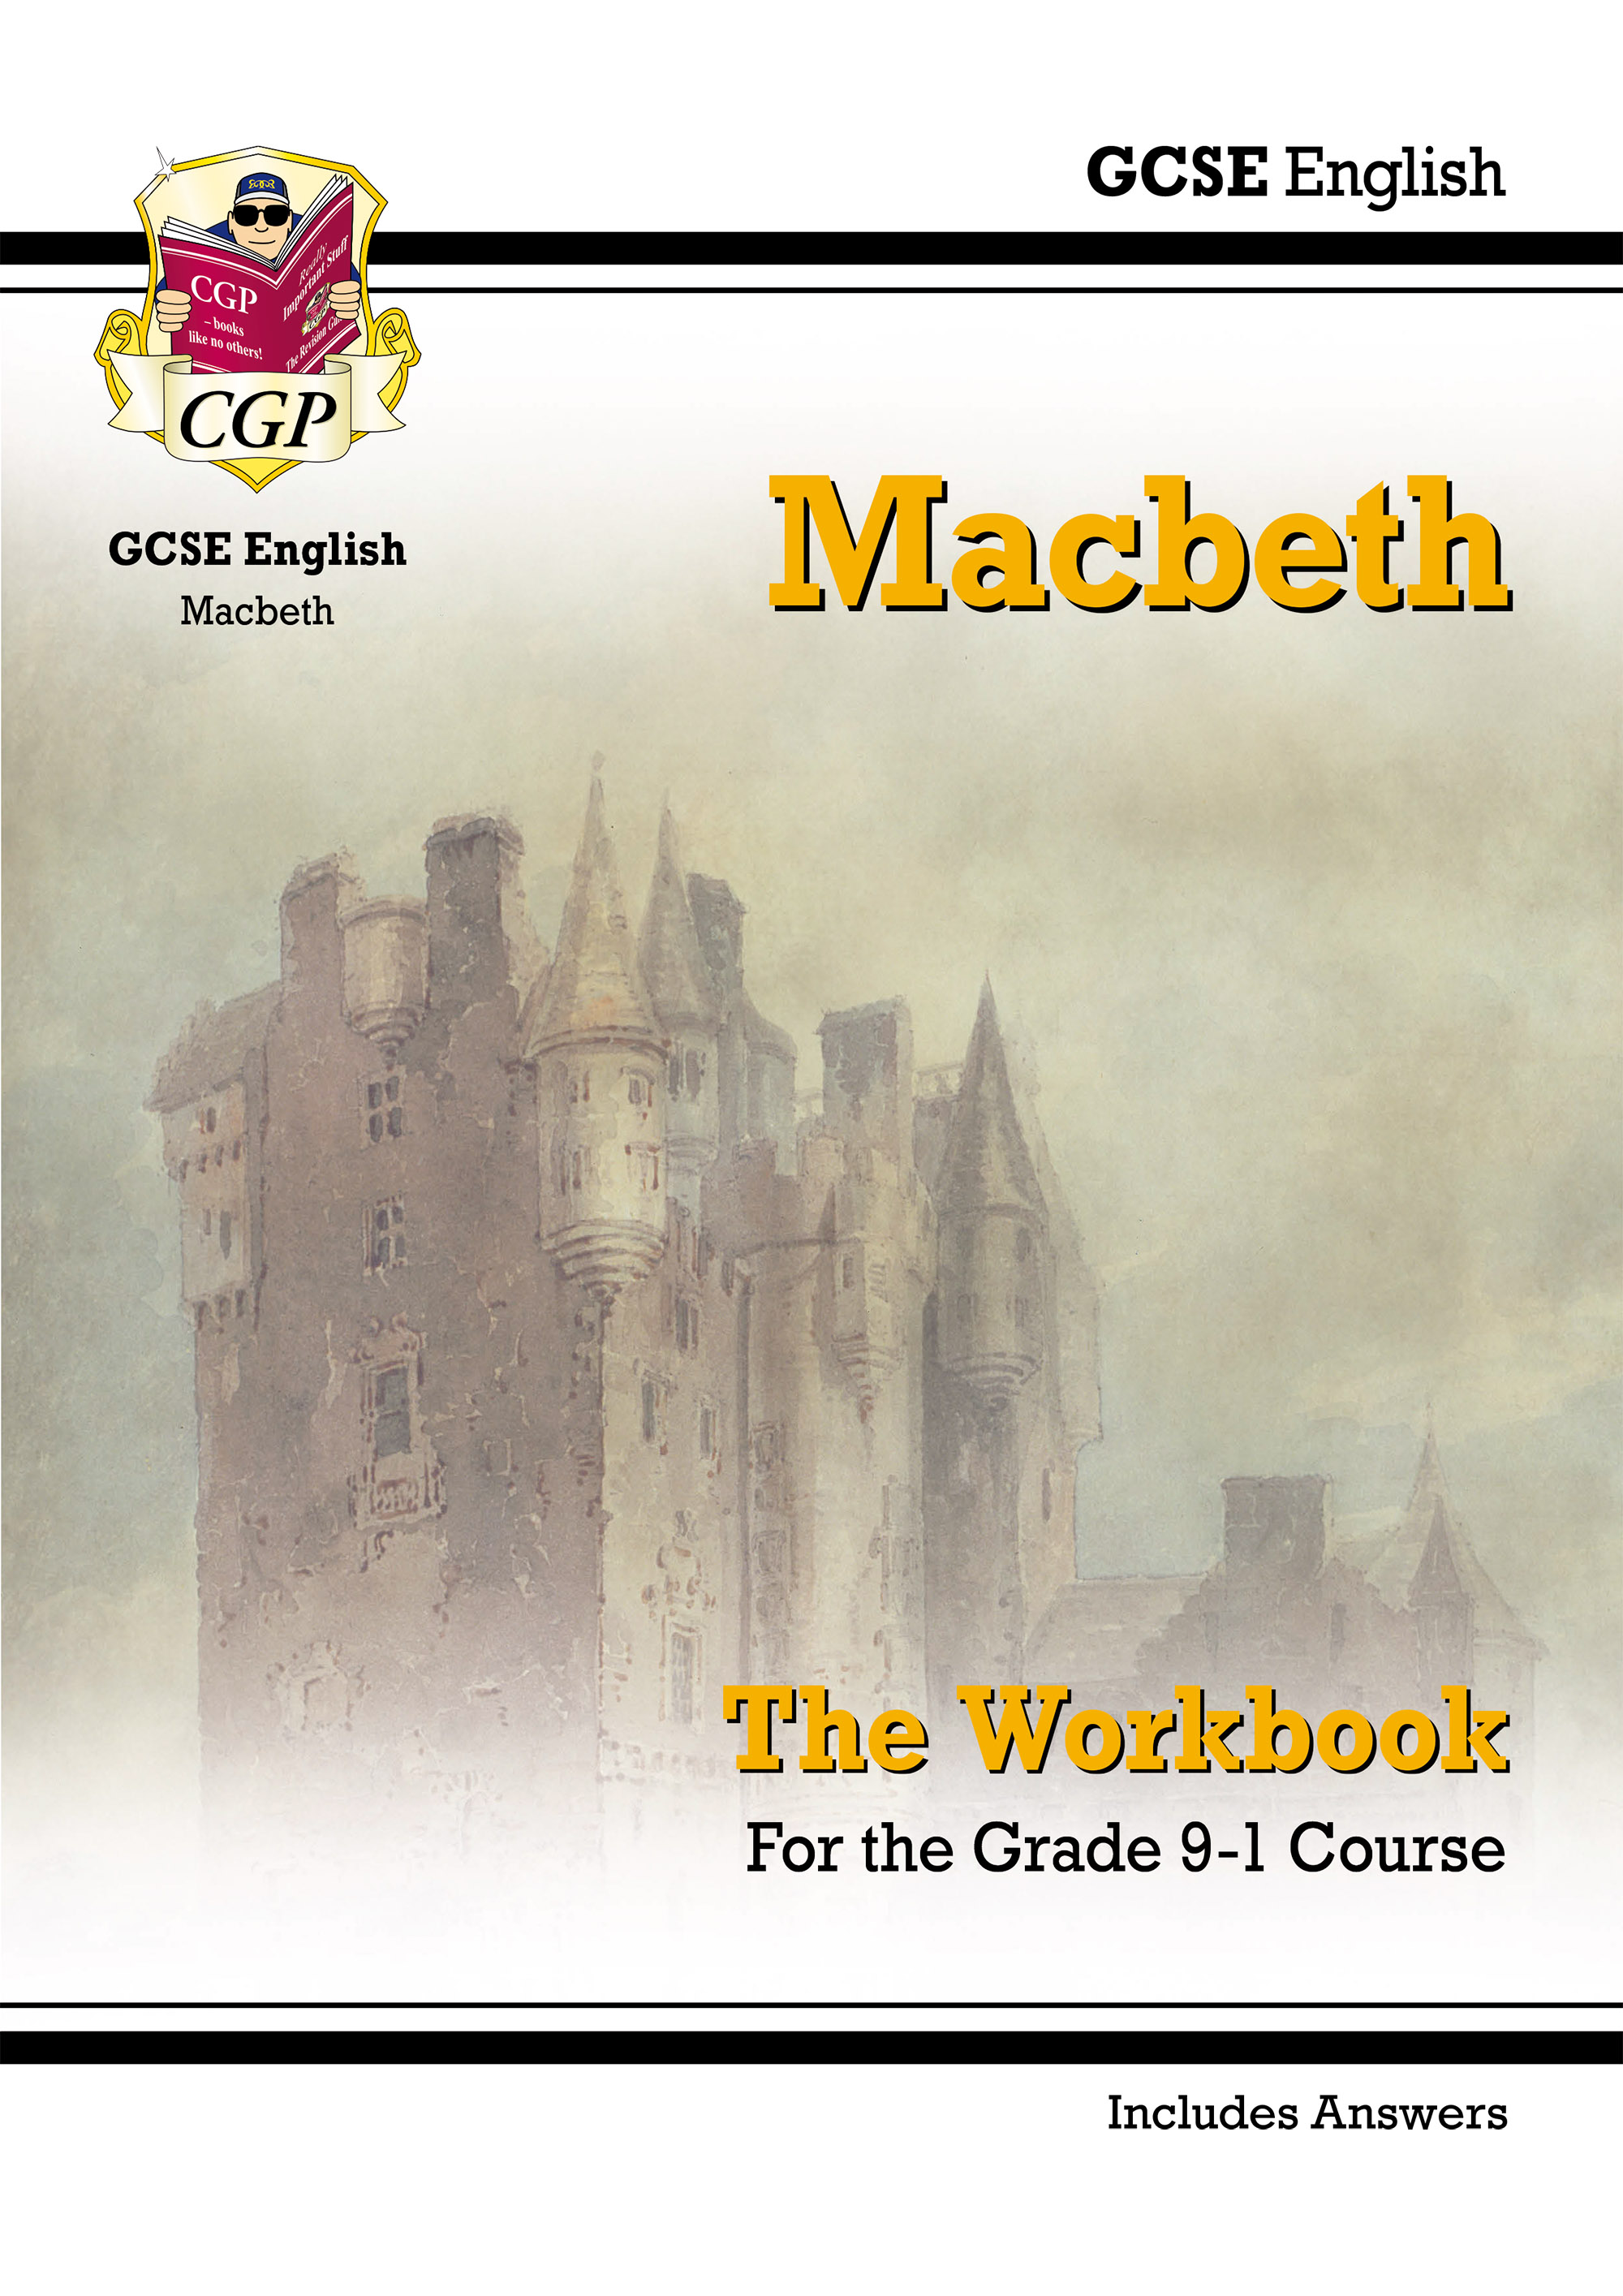 ETWM41DK - New Grade 9-1 GCSE English Shakespeare - Macbeth Workbook (includes Answers)